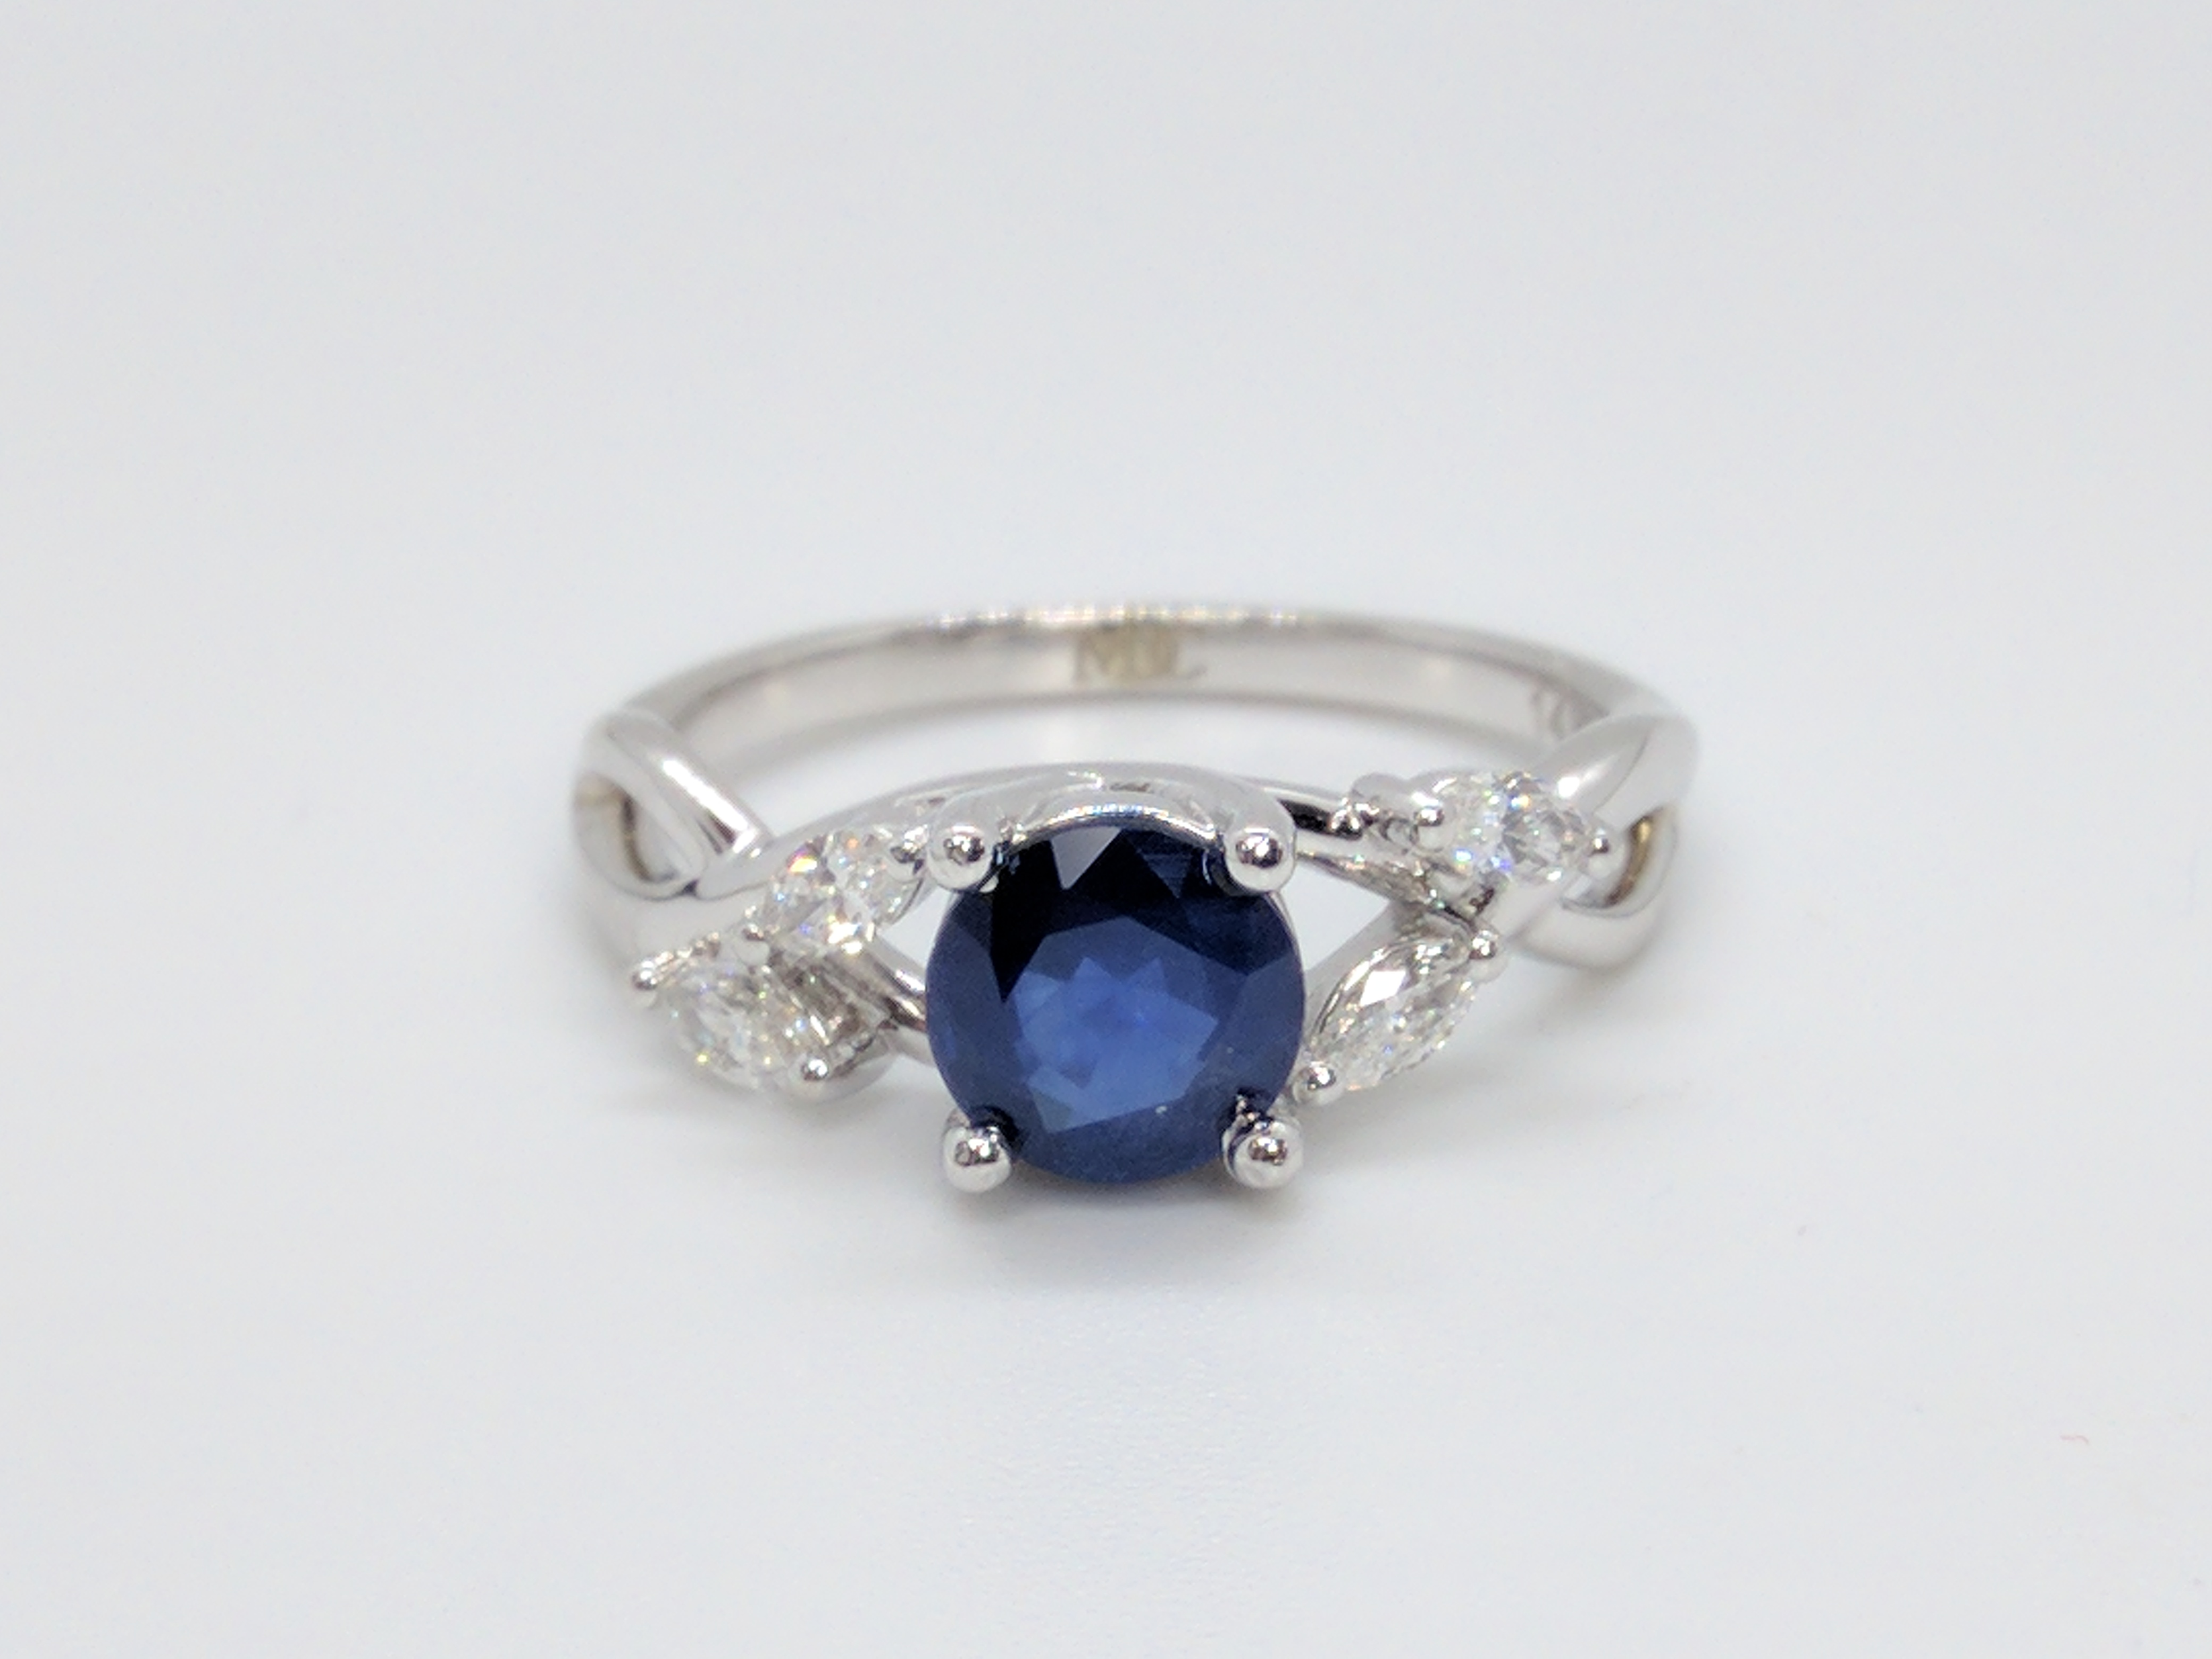 Blue Sapphire - Diamond Engagement Ring Marquise Floral Vine